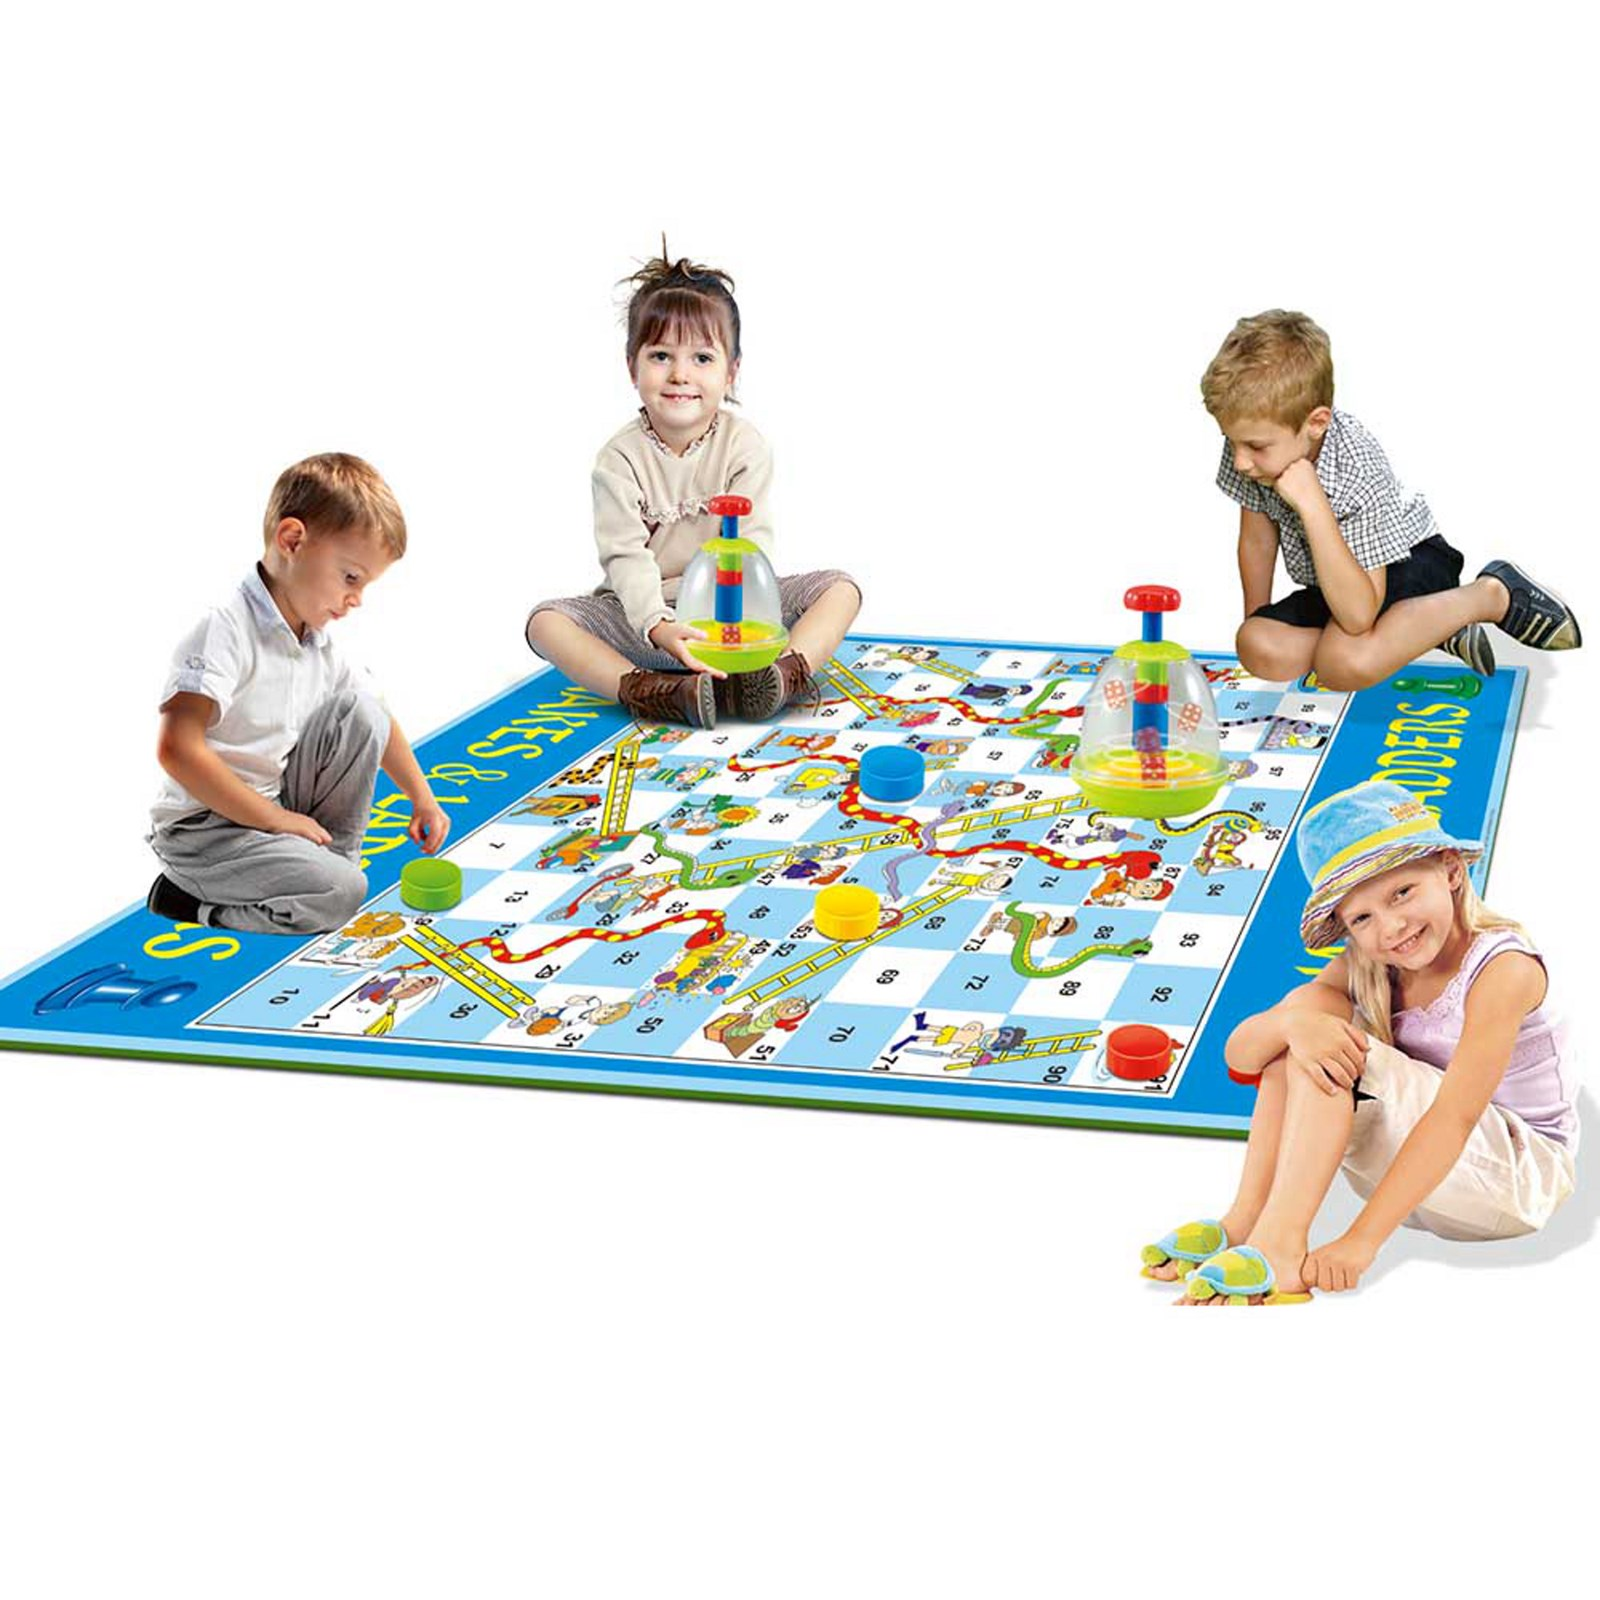 Large Snakes & Ladders Dice Game